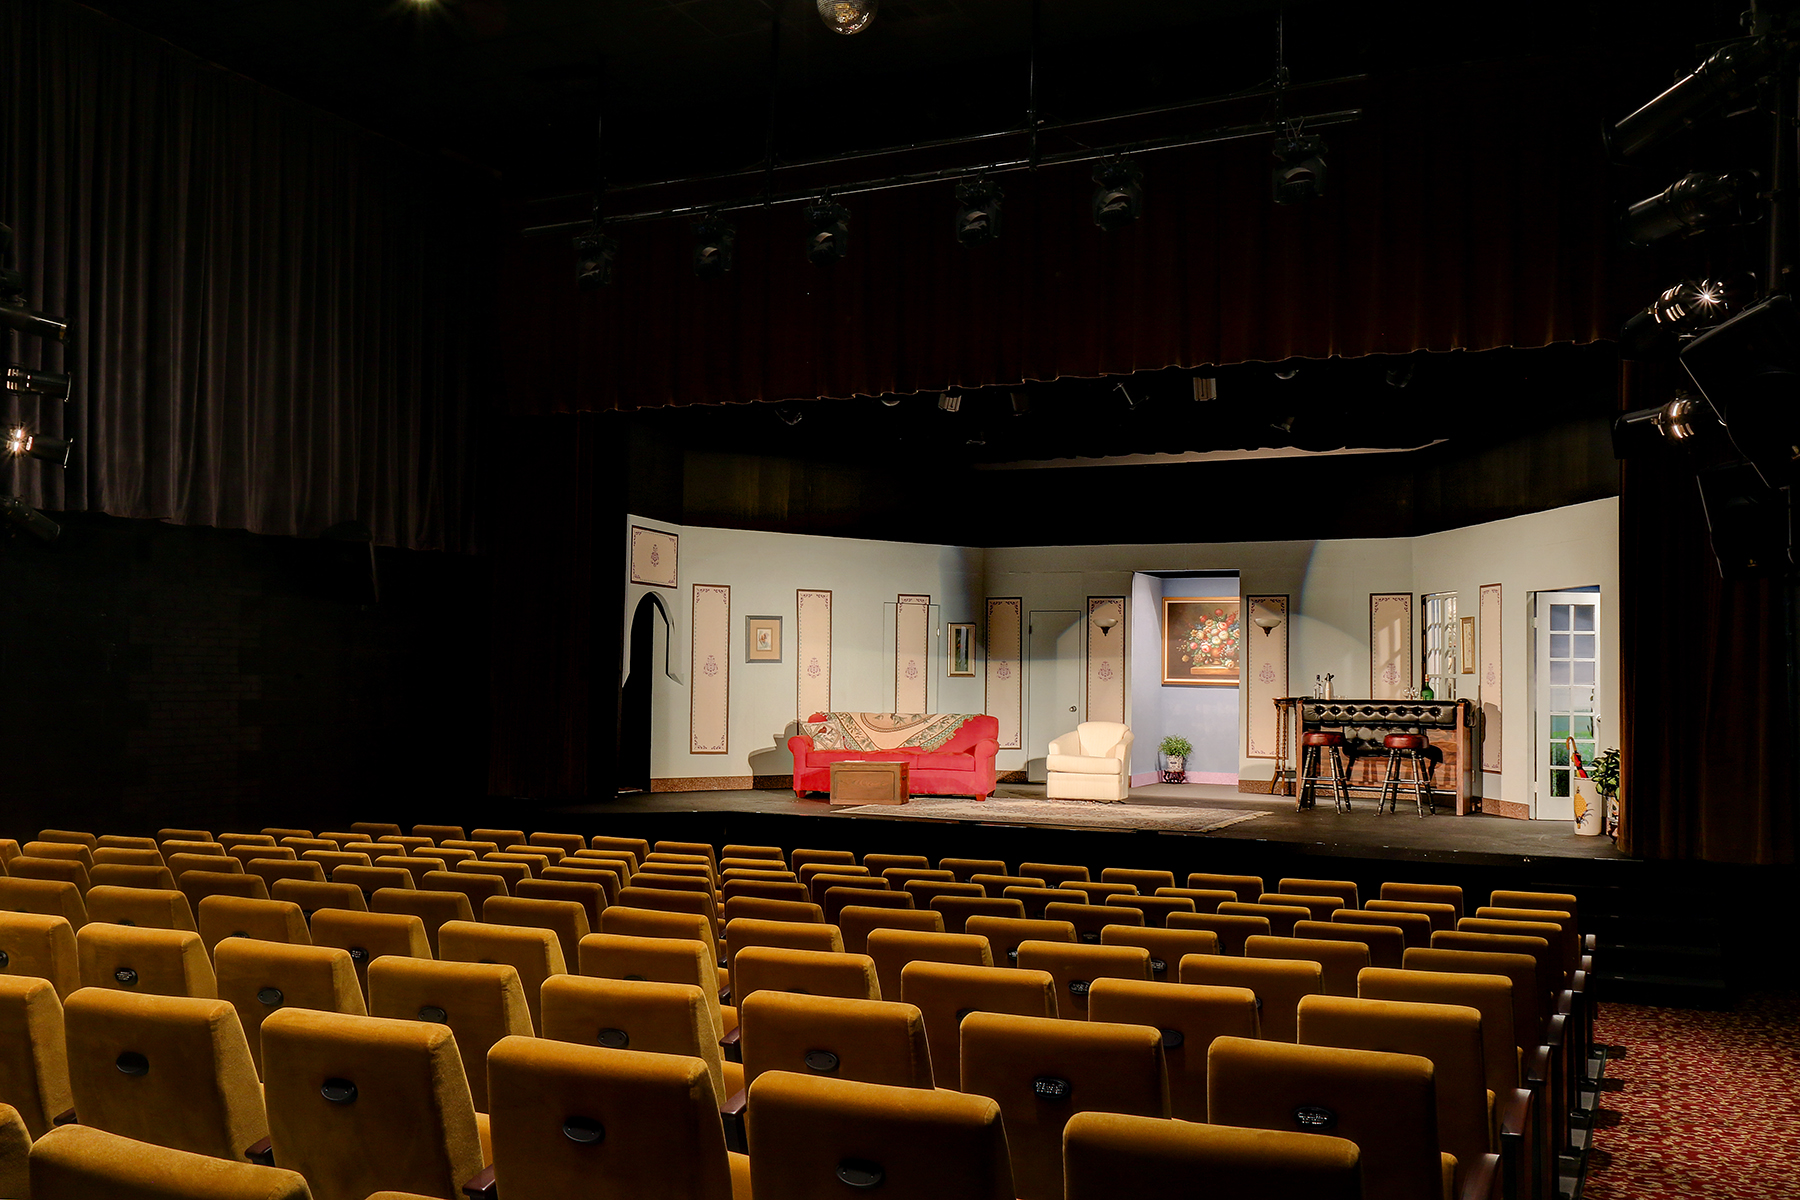 Strand Theater - seating stage angle 2 MLS.jpg